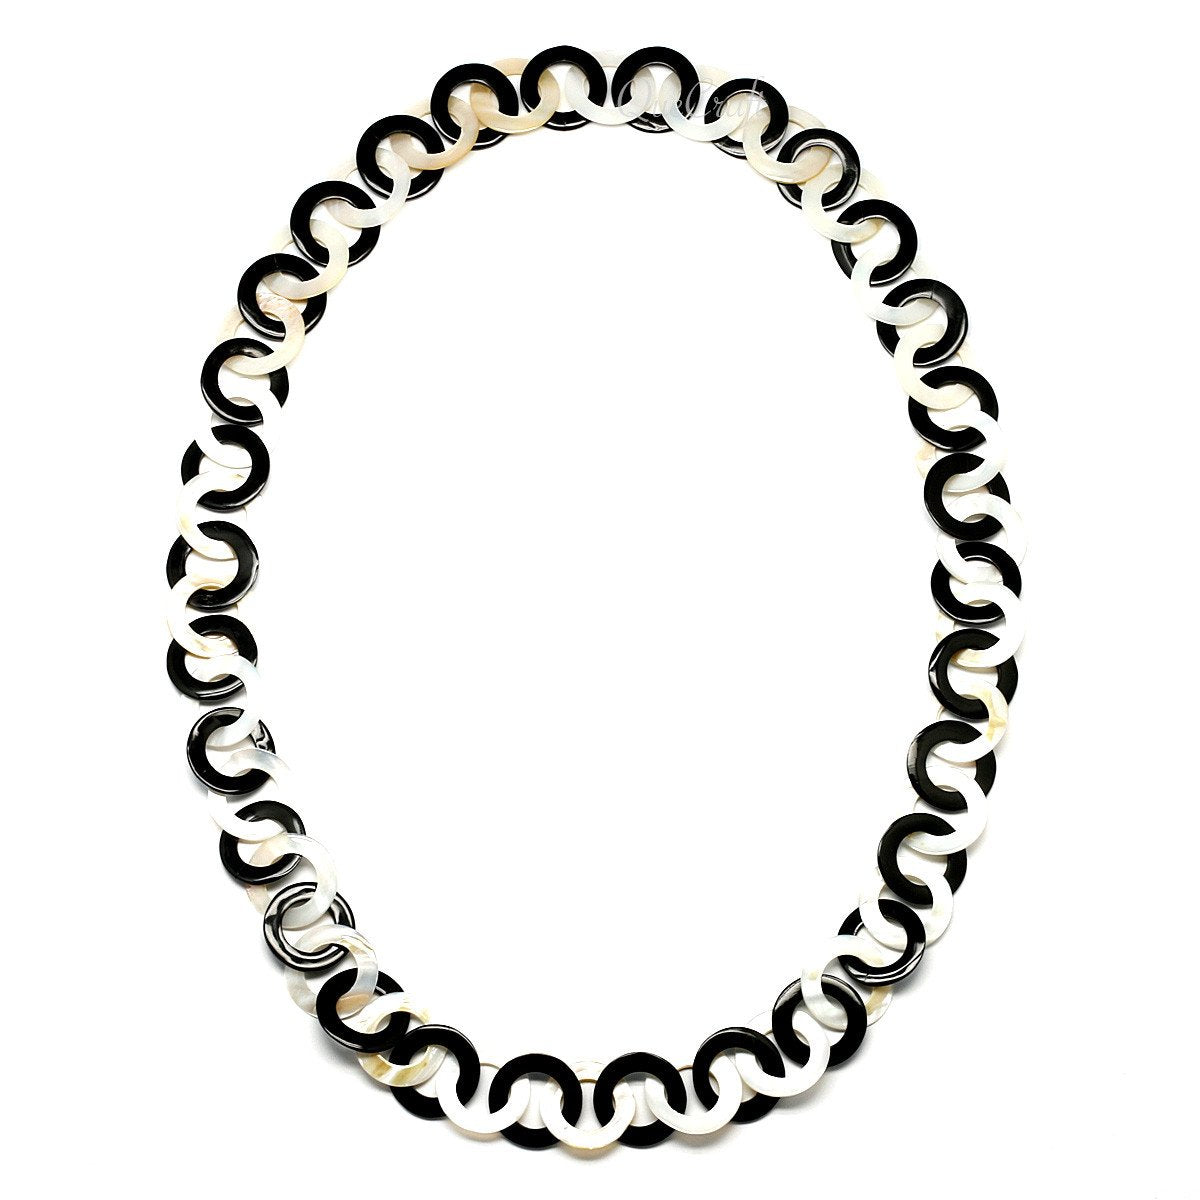 Horn & Shell Necklace #9684 - HORN.JEWELRY